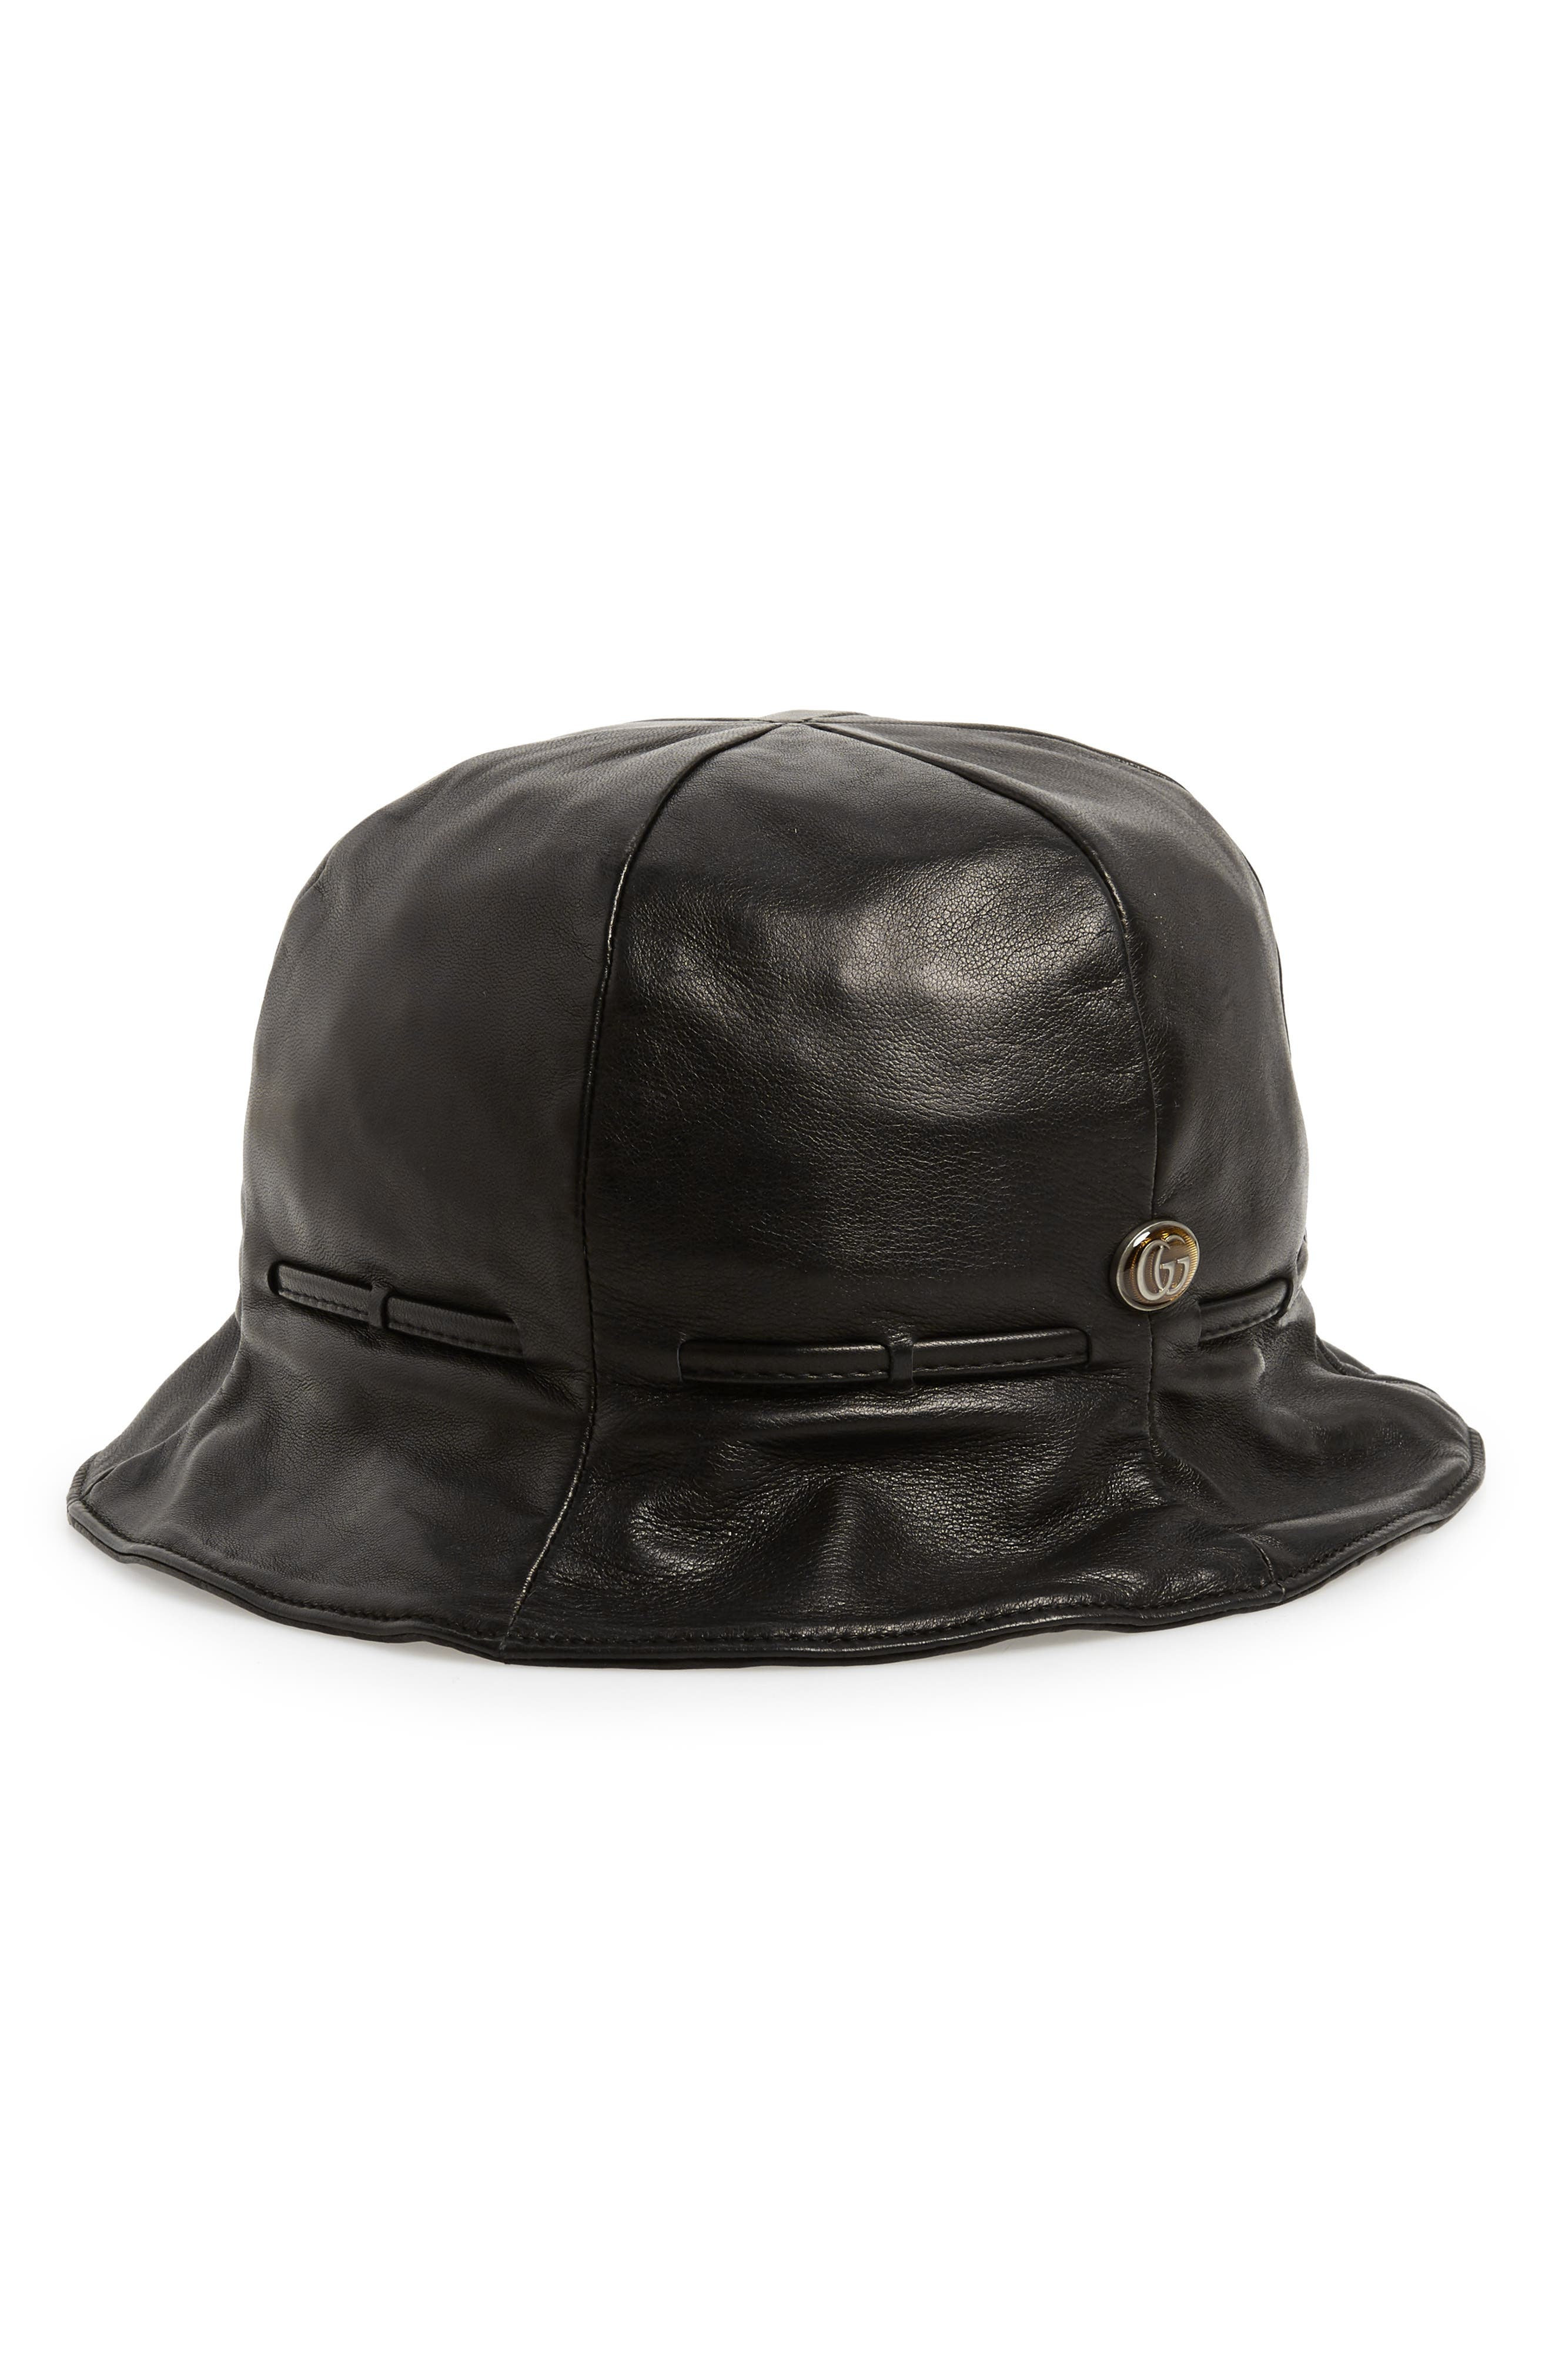 Gucci Hats for Women  6c41cd4e3d5